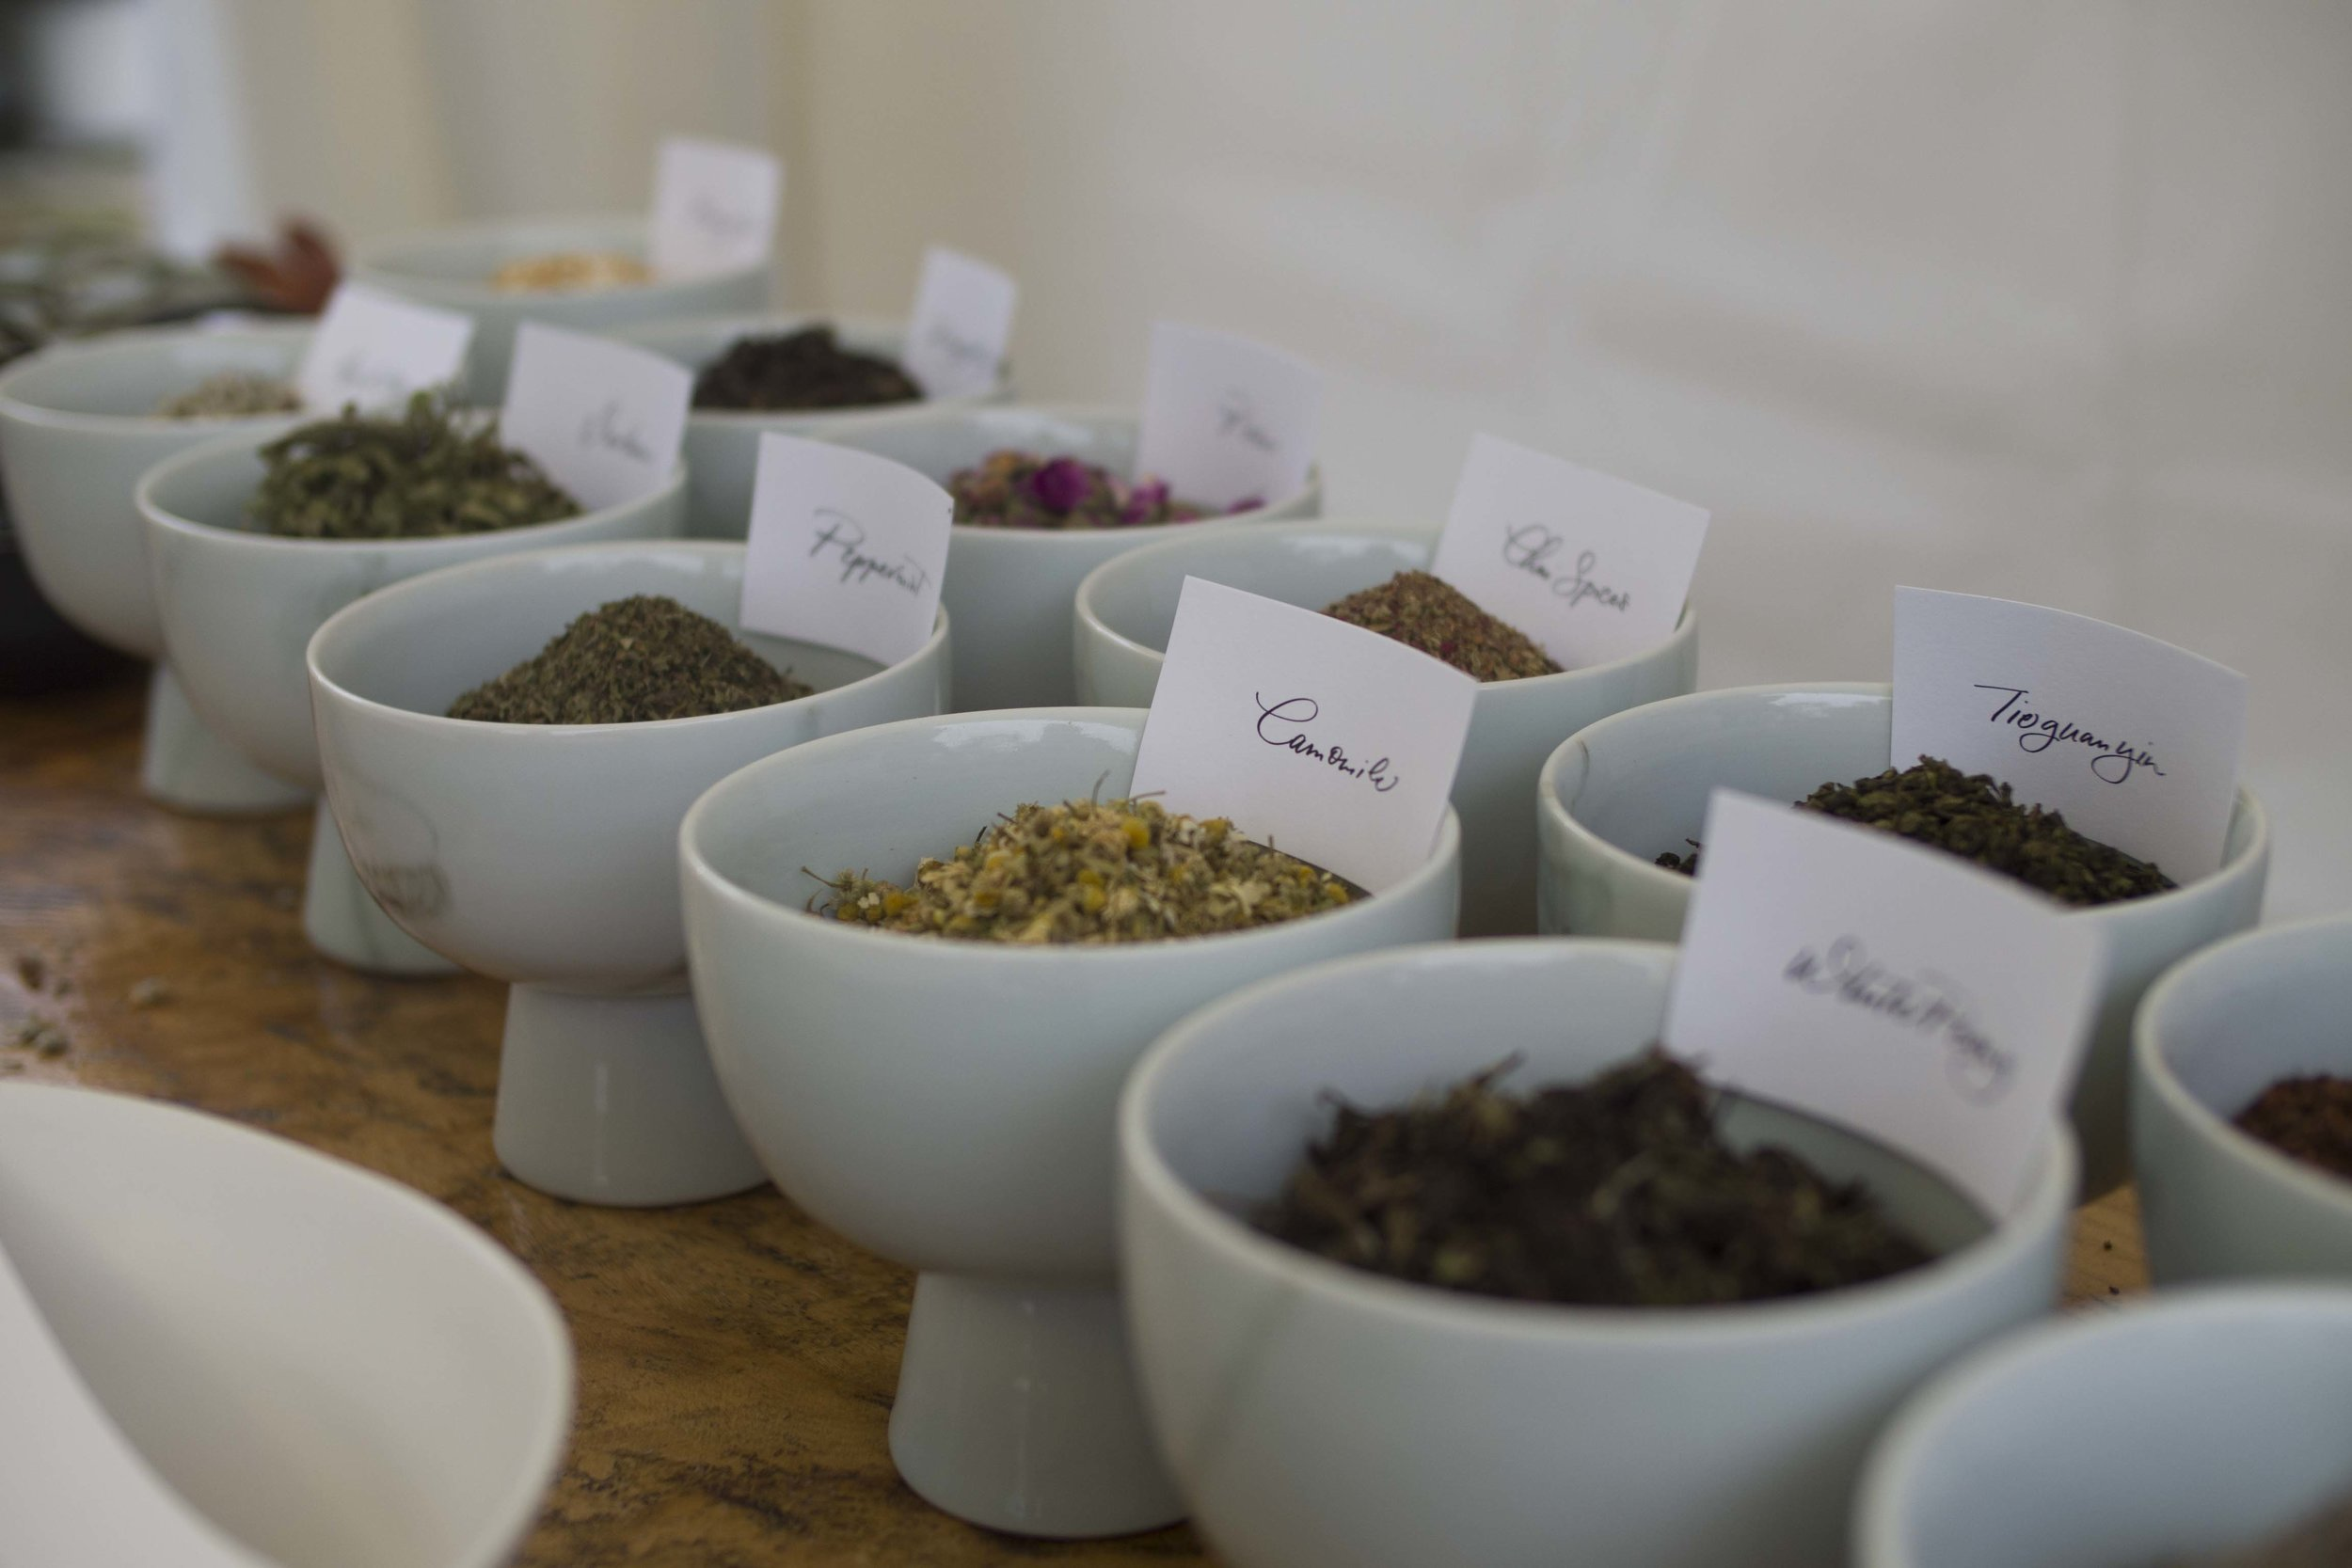 Tea Blending Workshop - This is a hands-on workshop, where participants will get to choose from a variety of teas, herbs and flowers to mix and create their own unique tea blend. They will learn about different types of tea and how they can blend well with others.They will be able to taste their various creations throughout, as well as take home a jar of their very own tea blend at the end. We will also provide a selection of teakha's tea-inspired desserts for guests to enjoy during the workshop.